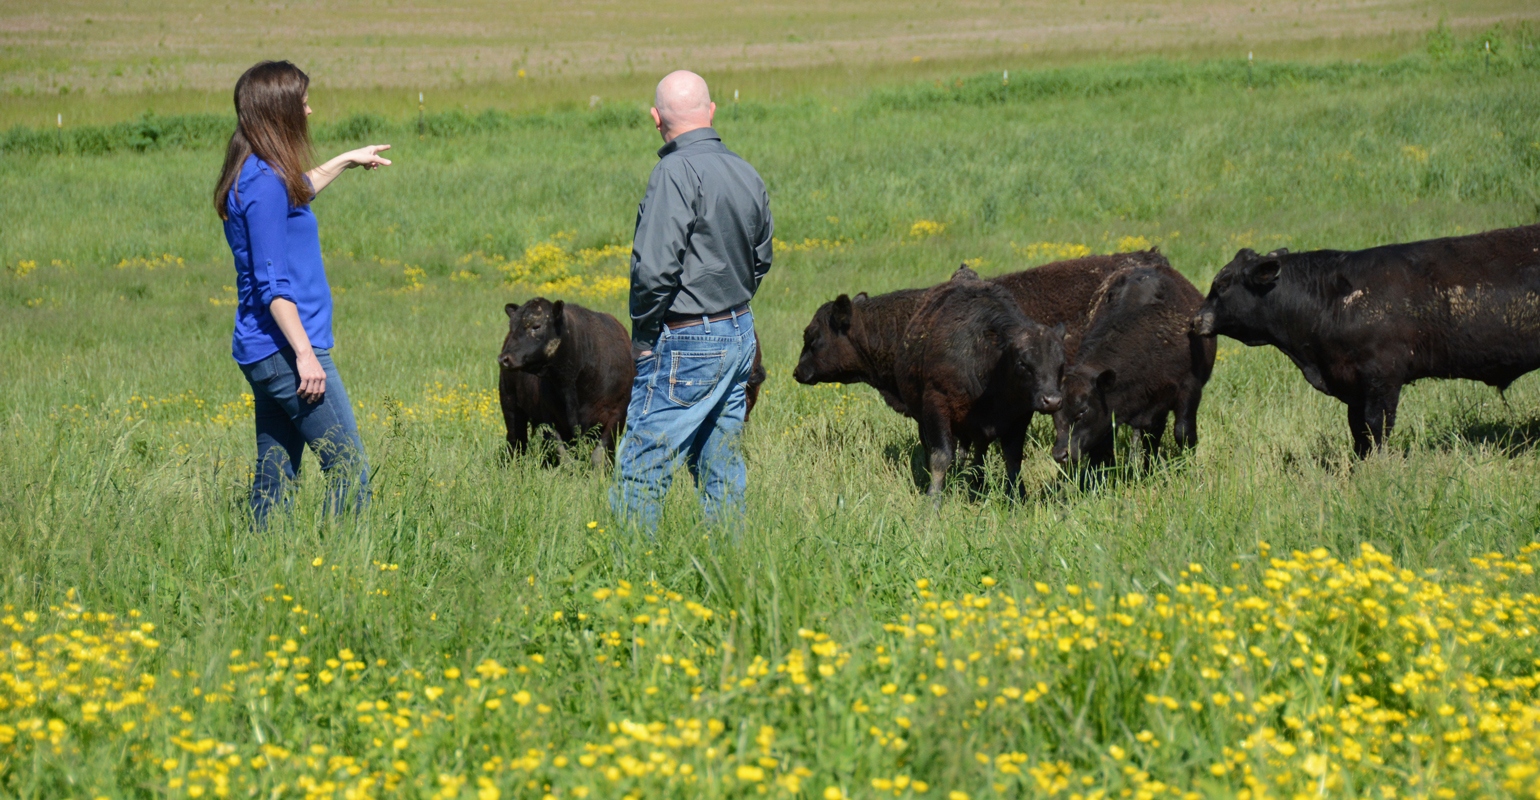 woman and man with Angus bulls on pasture